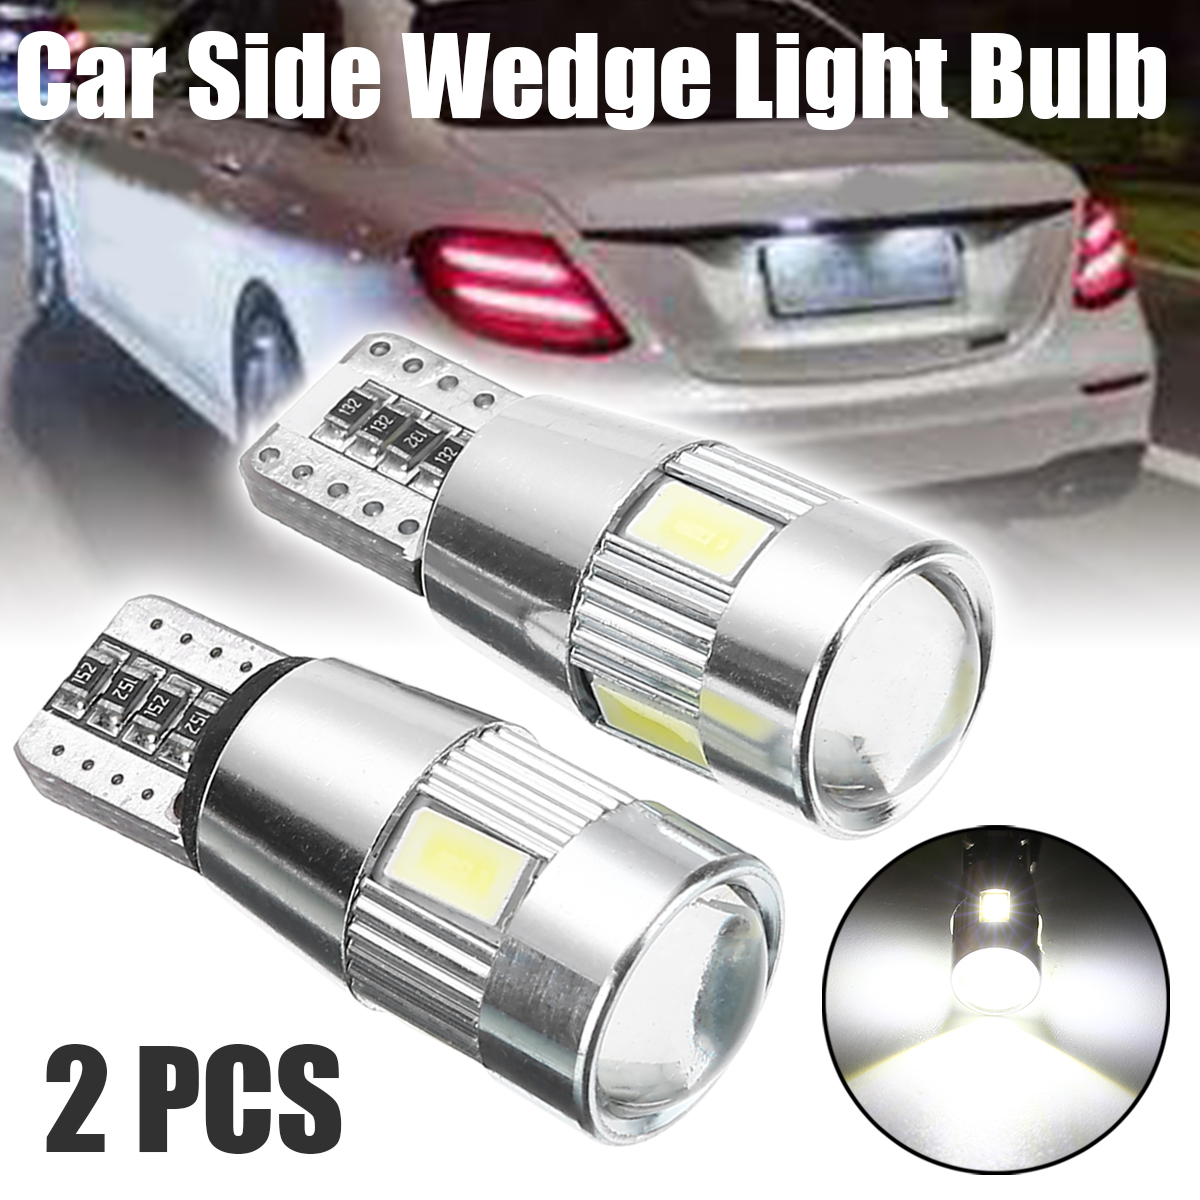 2Pcs High Quality T-10 6SMD LED Canbus Error Free Bulb 5630 C5W 194 Car Side Wedge Light Bulb With Lens Car Light Source